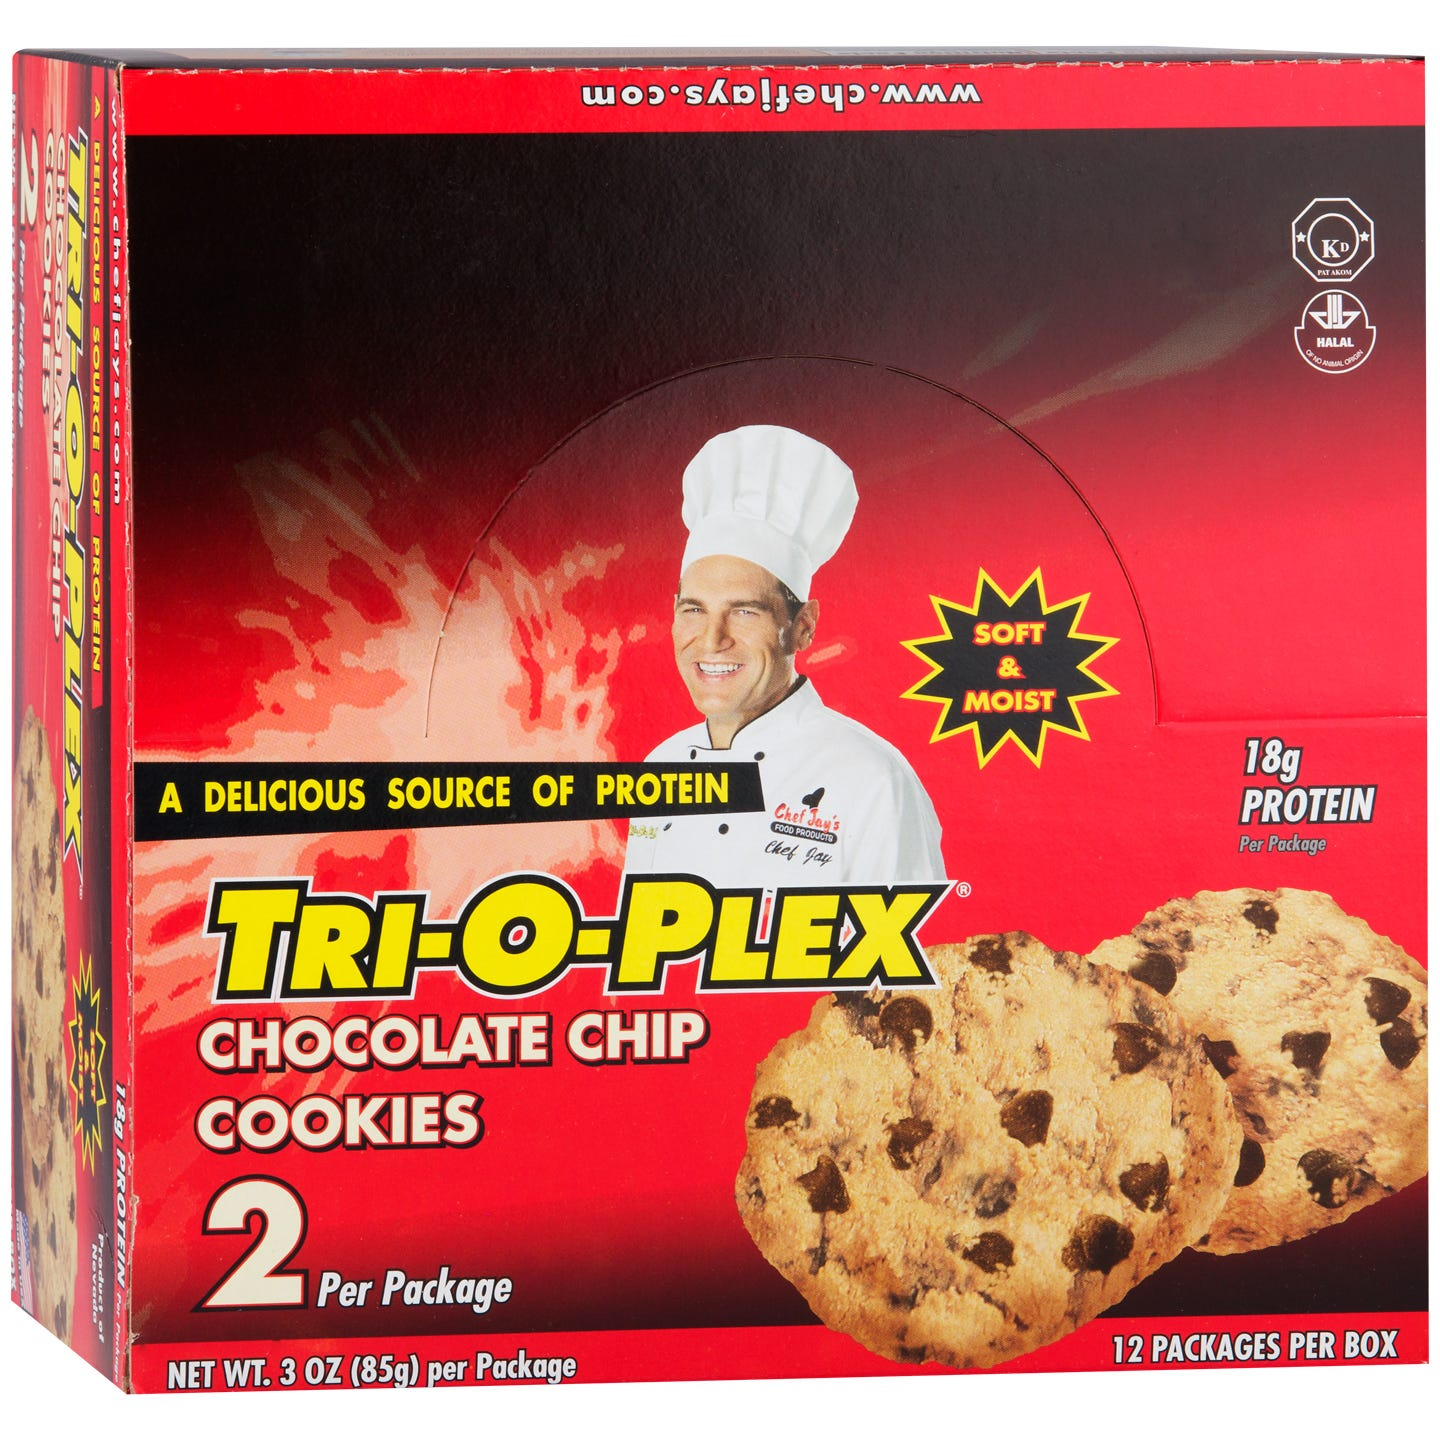 Protein Cookies Chocolate Chip (12 ct) - Tri-O-Plex by Chef Jay's - Rapid Diet Weight Loss Products Shop